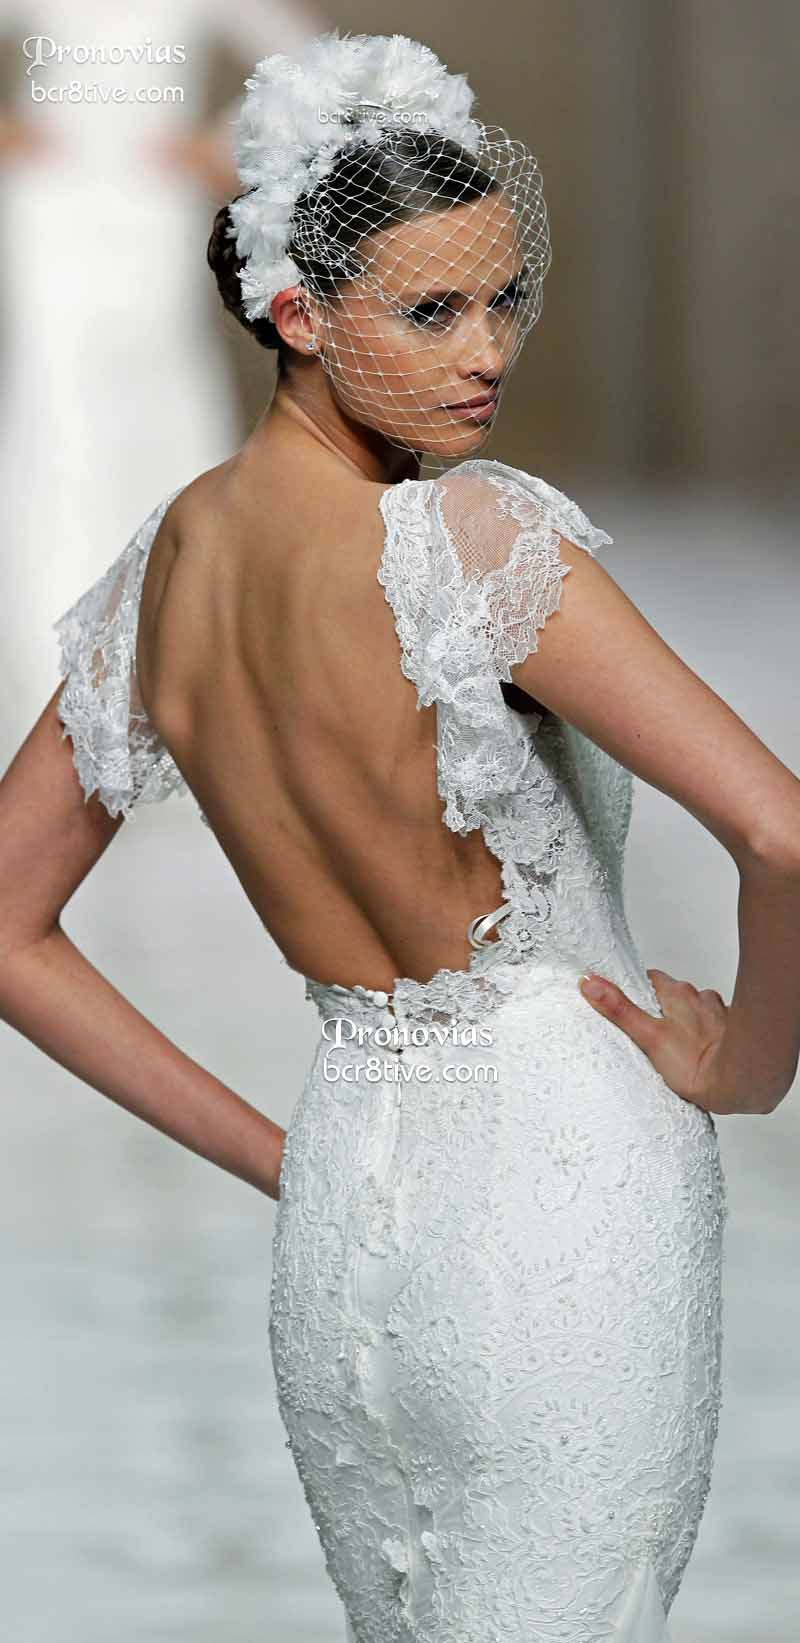 Designer Wedding Gowns on Be Creative